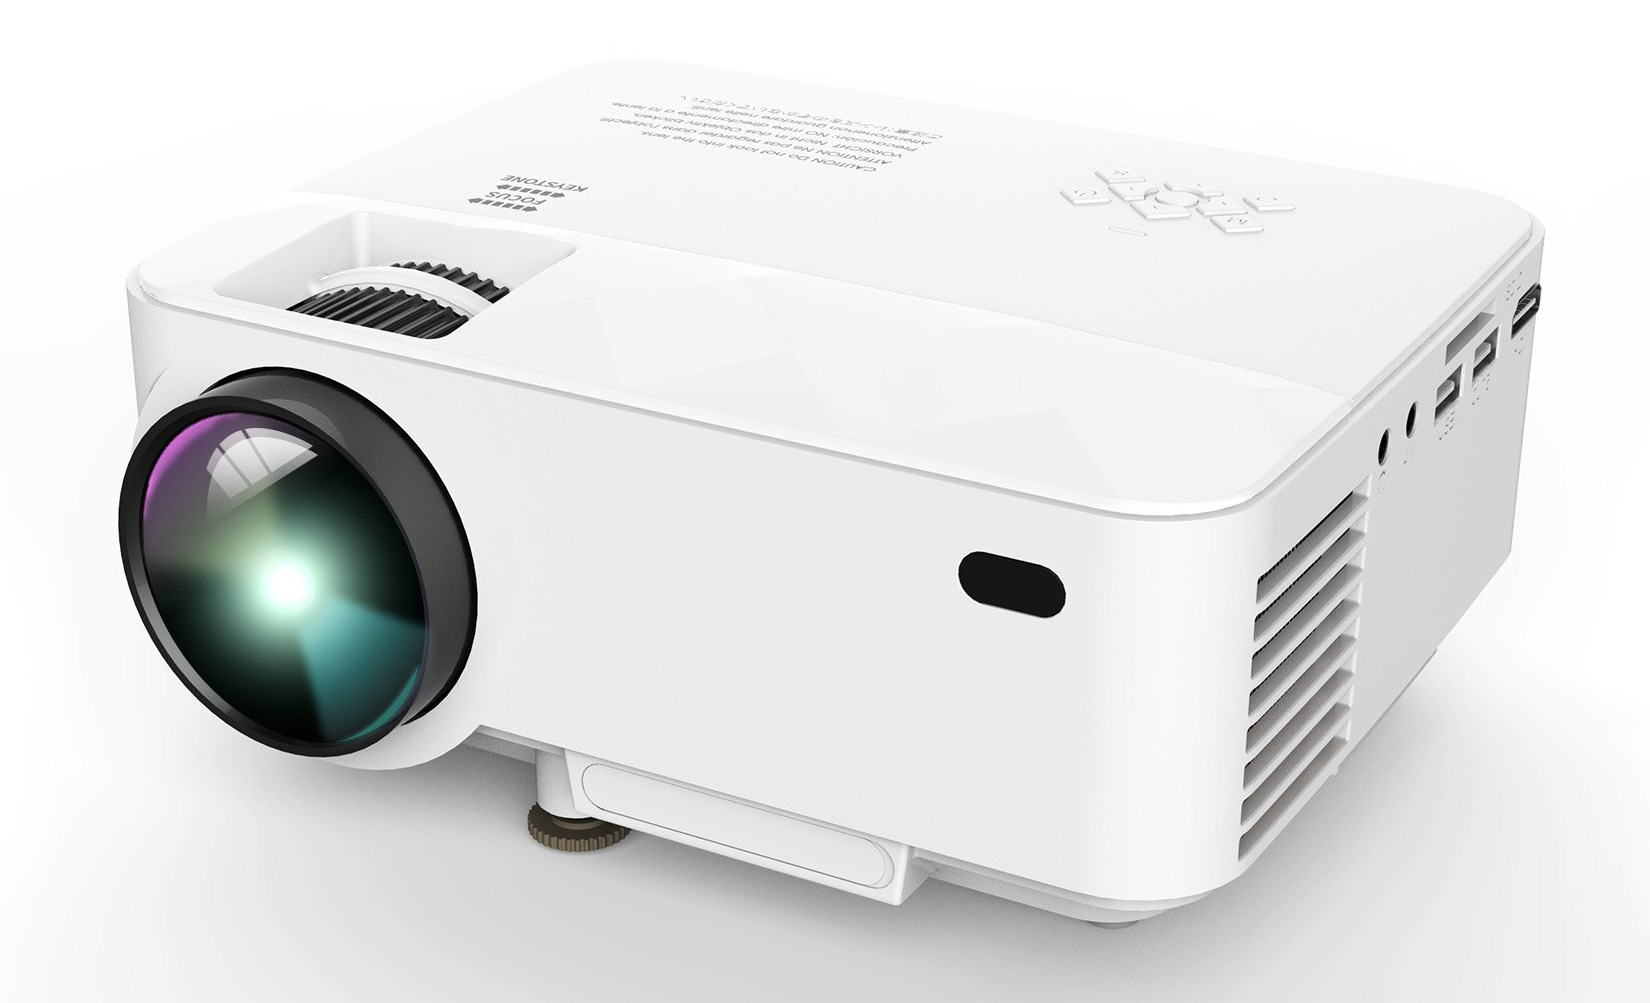 Dbpower t20 portable mini led projector review for Pocket projector reviews